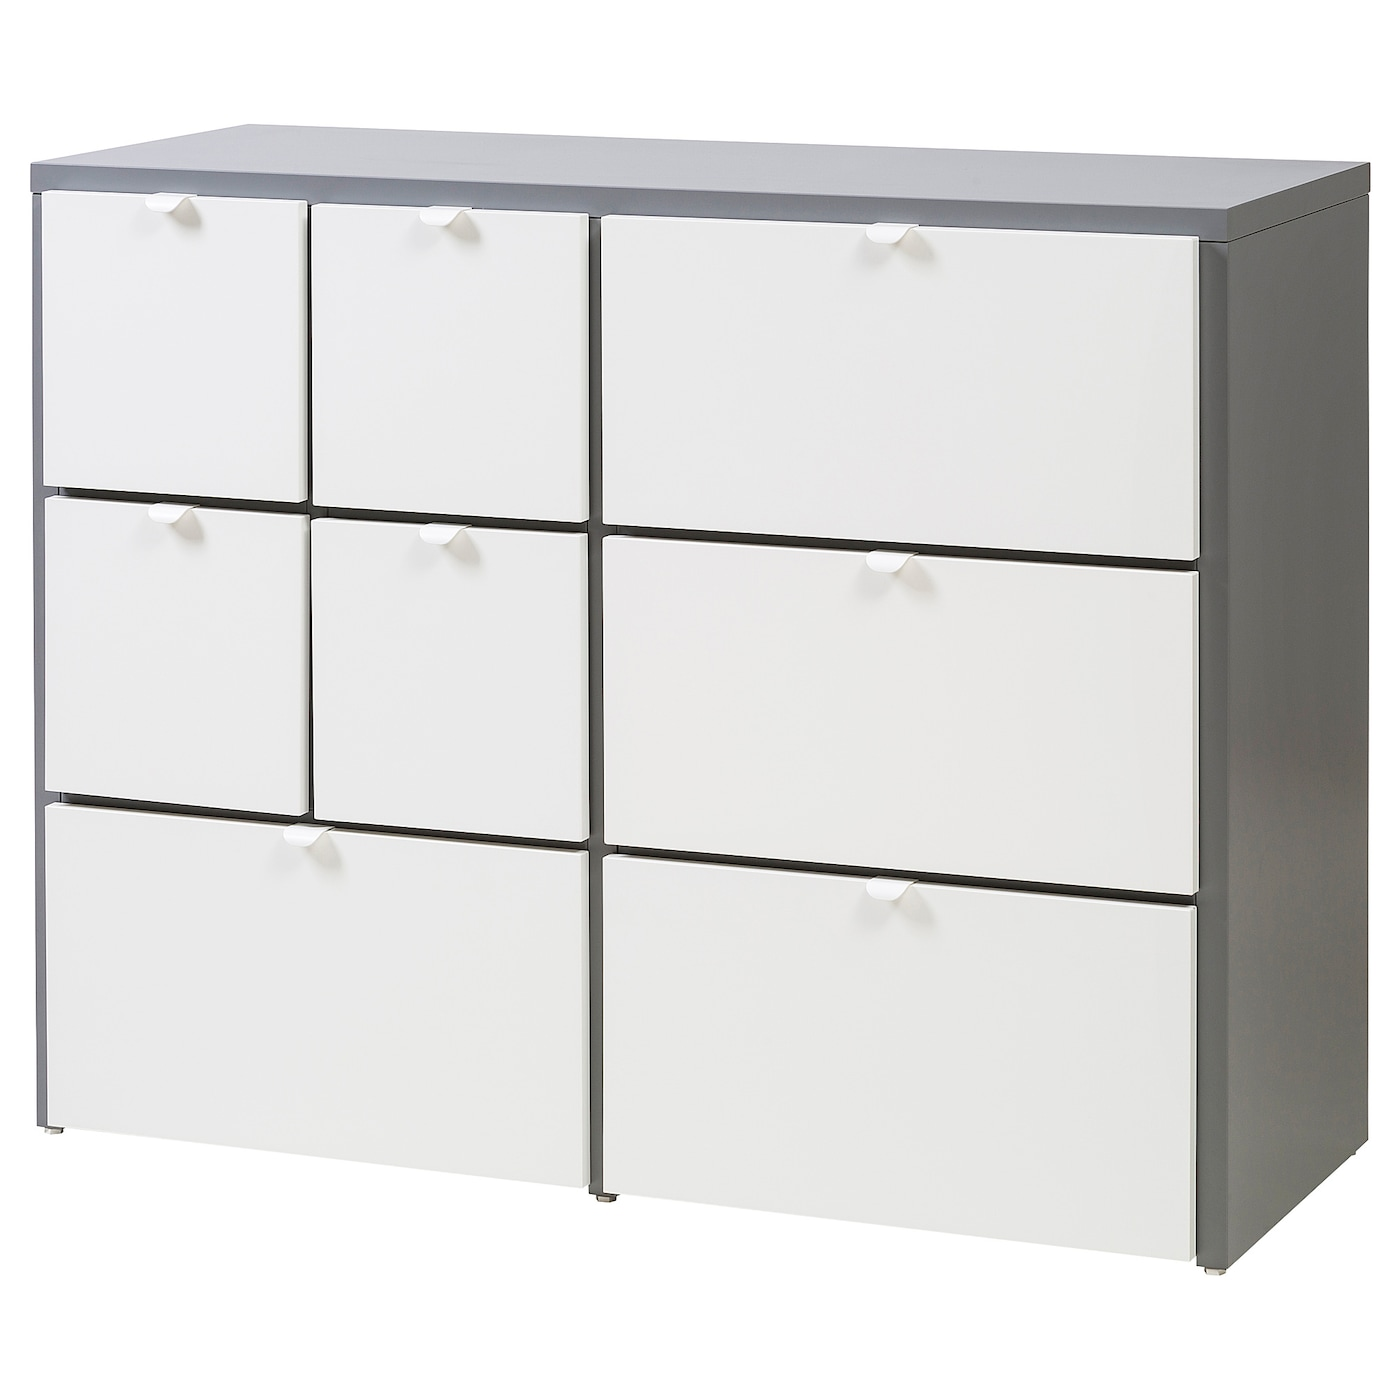 visthus commode 8 tiroirs gris blanc 122x96 cm ikea. Black Bedroom Furniture Sets. Home Design Ideas